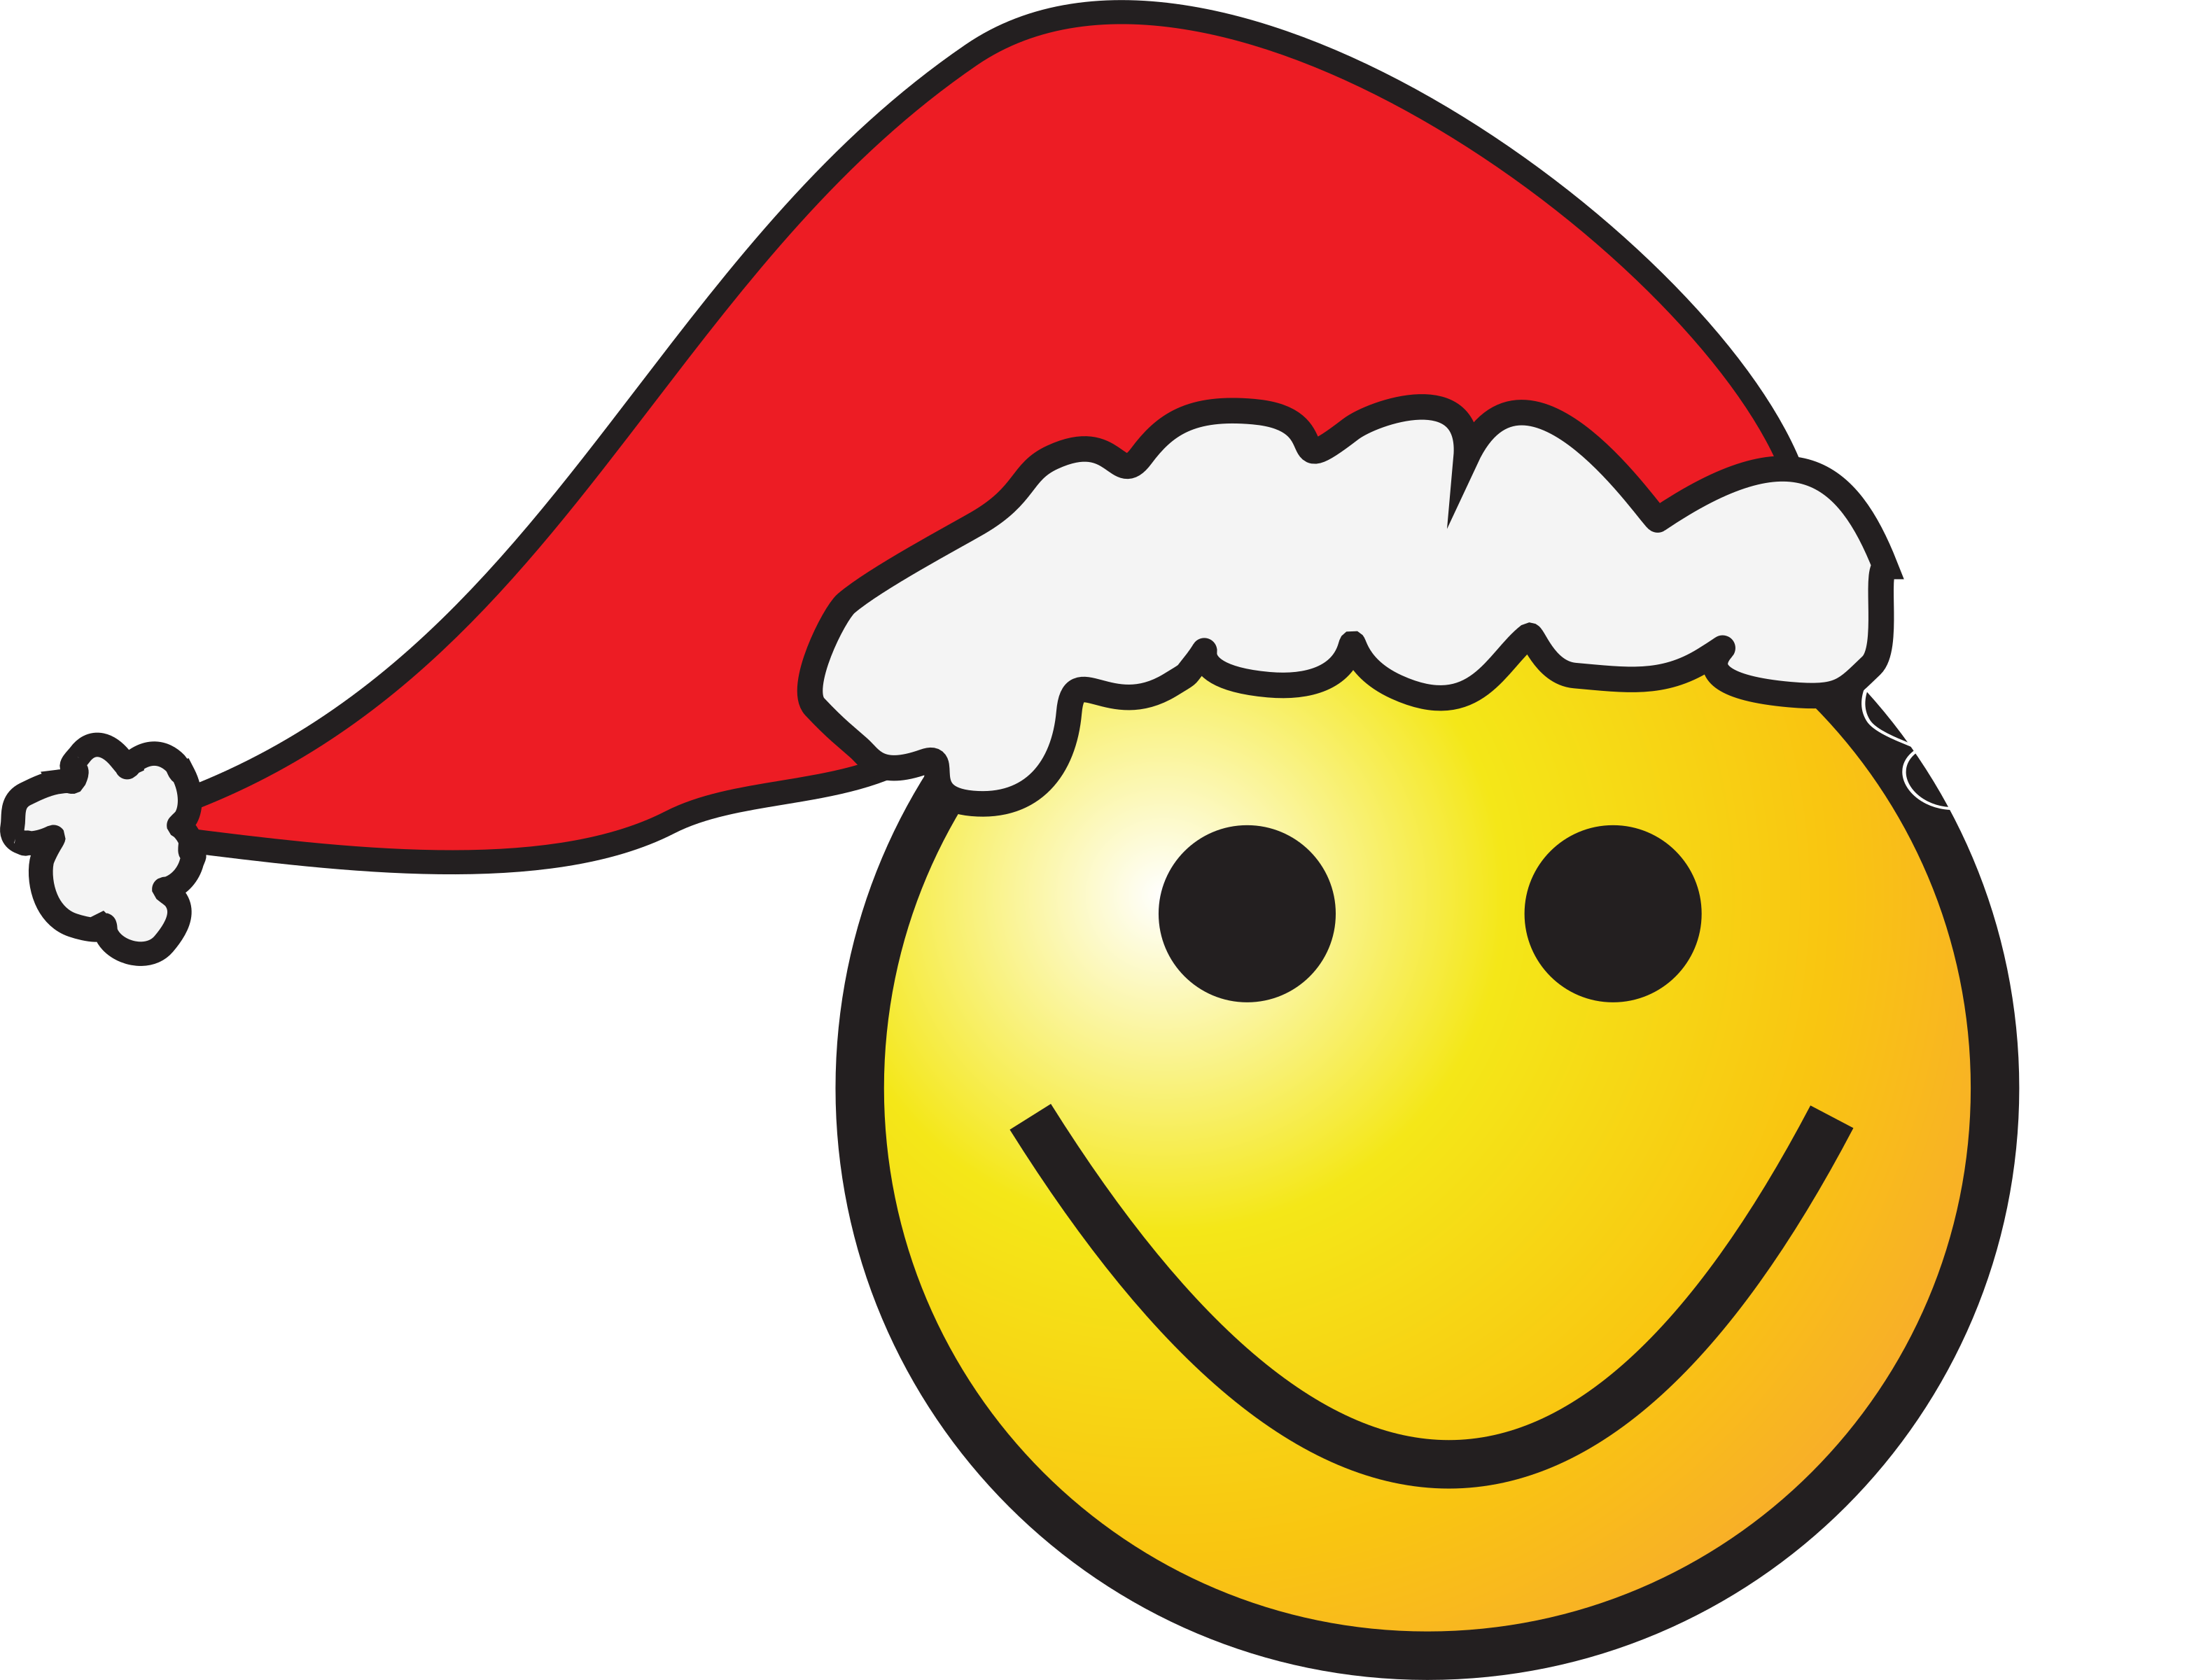 Santa big image png. Wednesday clipart smiley